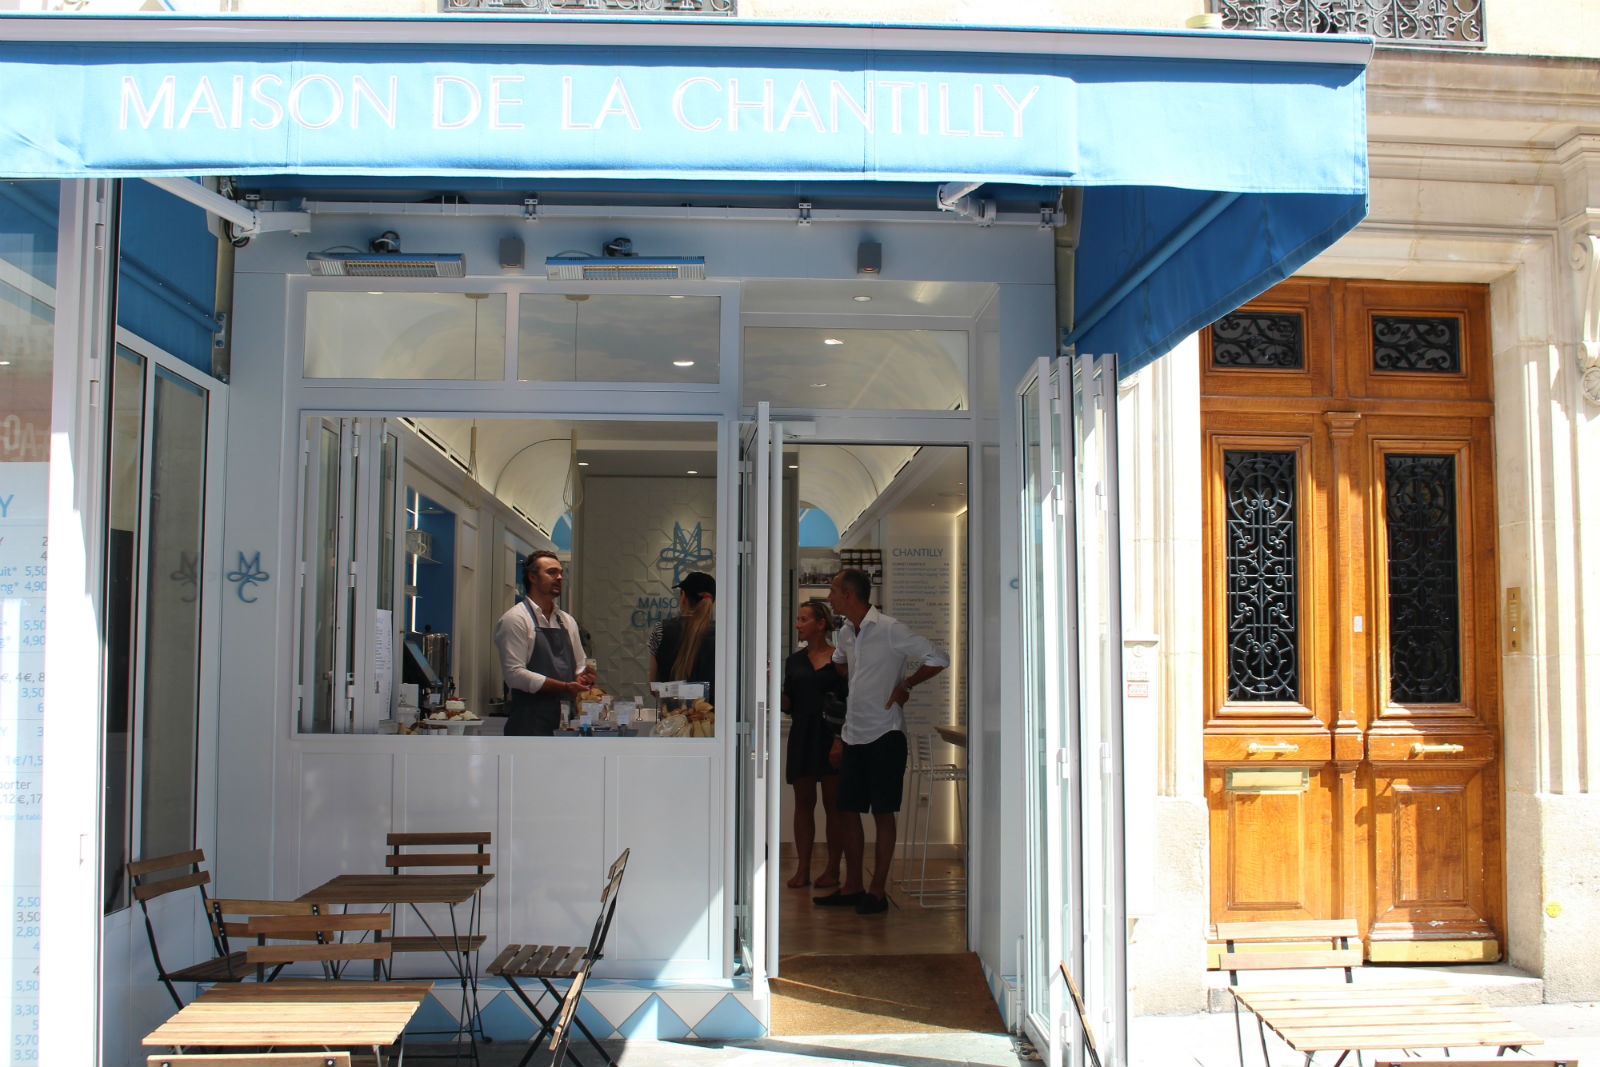 HiP Paris blog. Maison de la Chantilly. A welcome addition to the specialty shops on Rue Cler